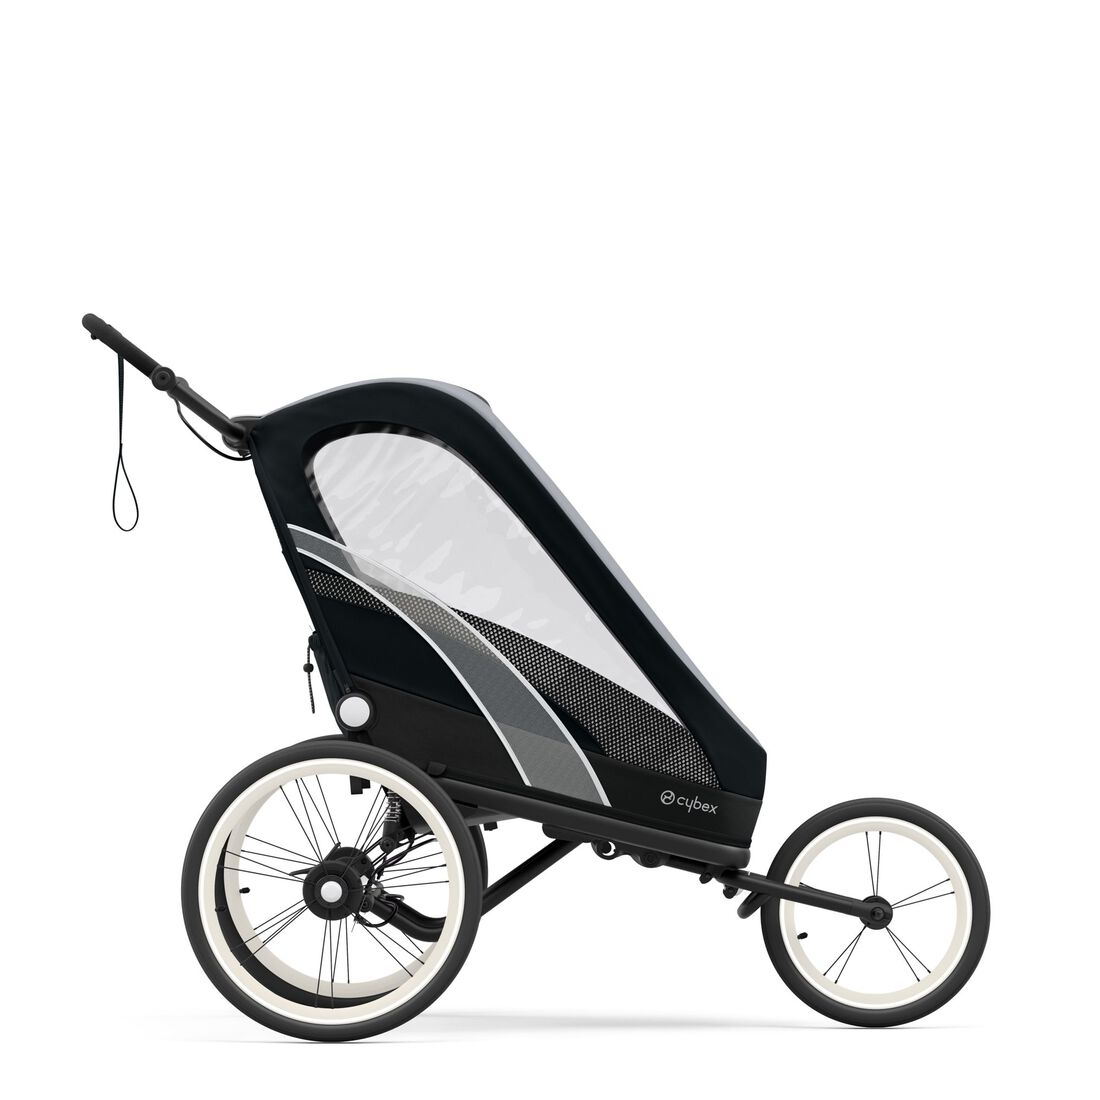 CYBEX Zeno One Box - All Black in All Black large image number 5